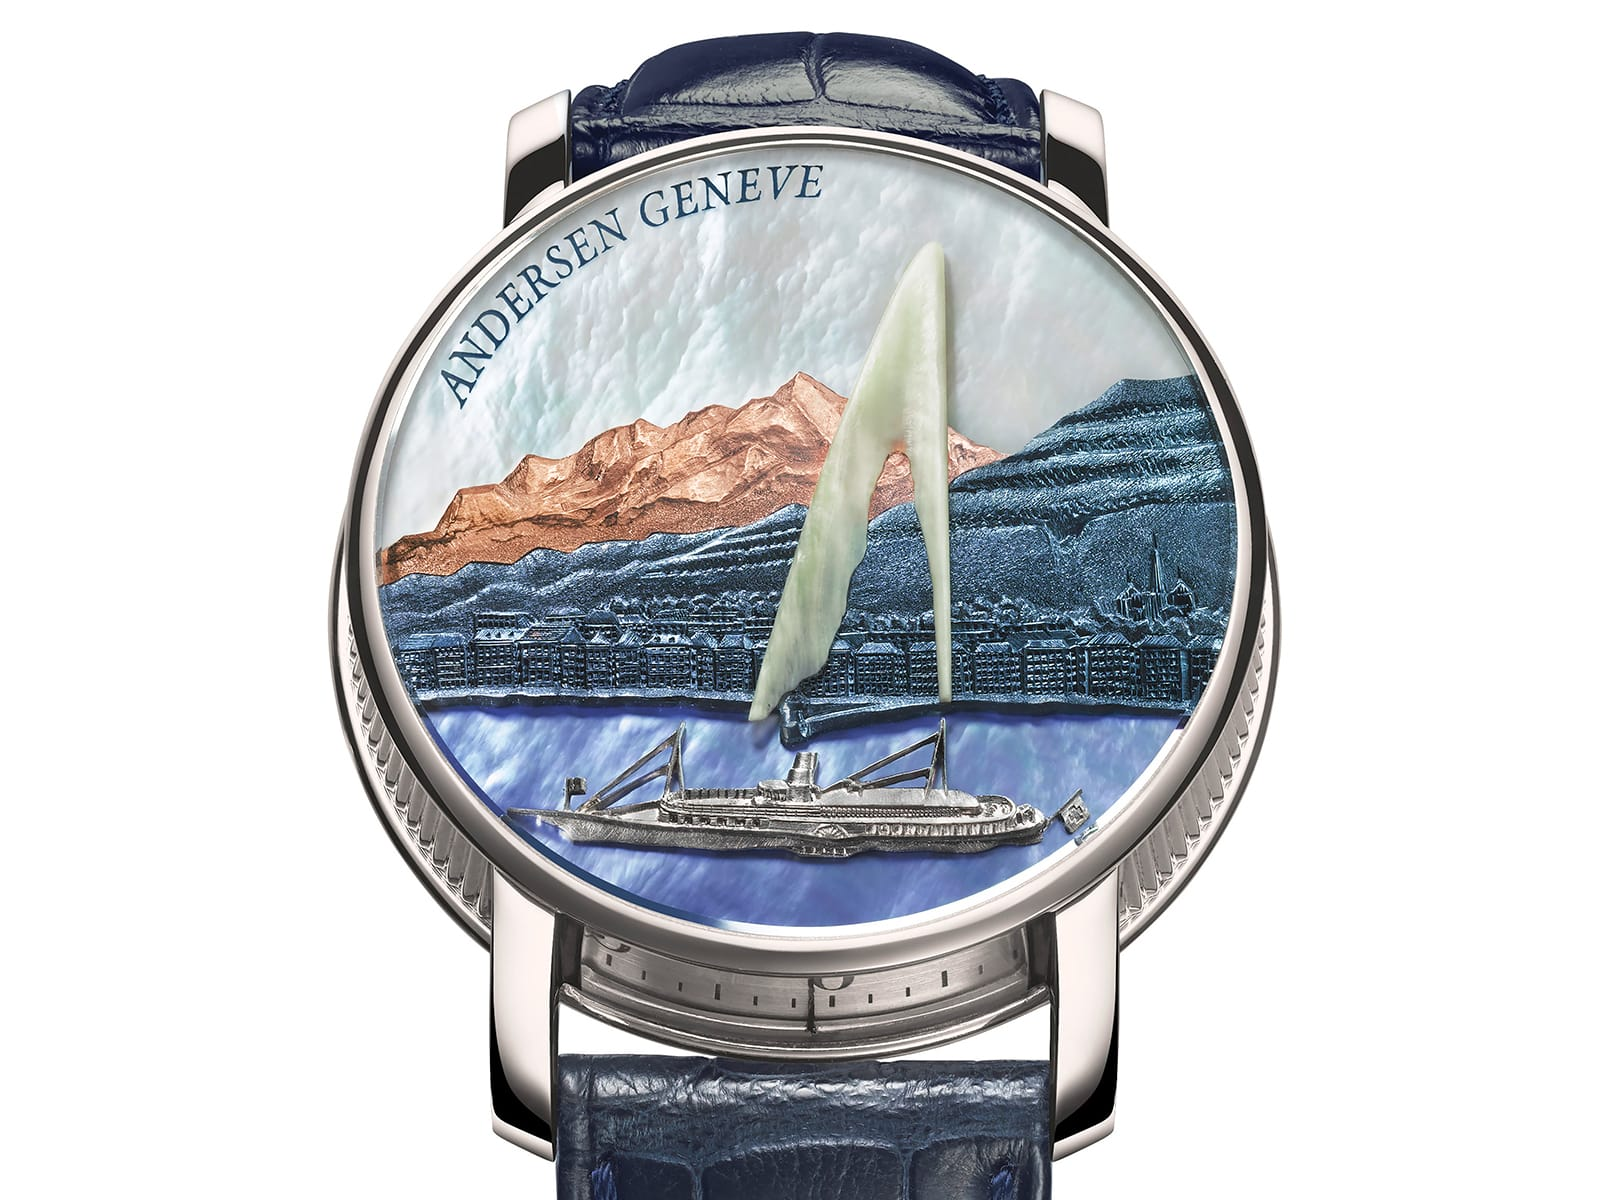 andersen-geneve-montre-a-tact-only-watch-2019.jpg